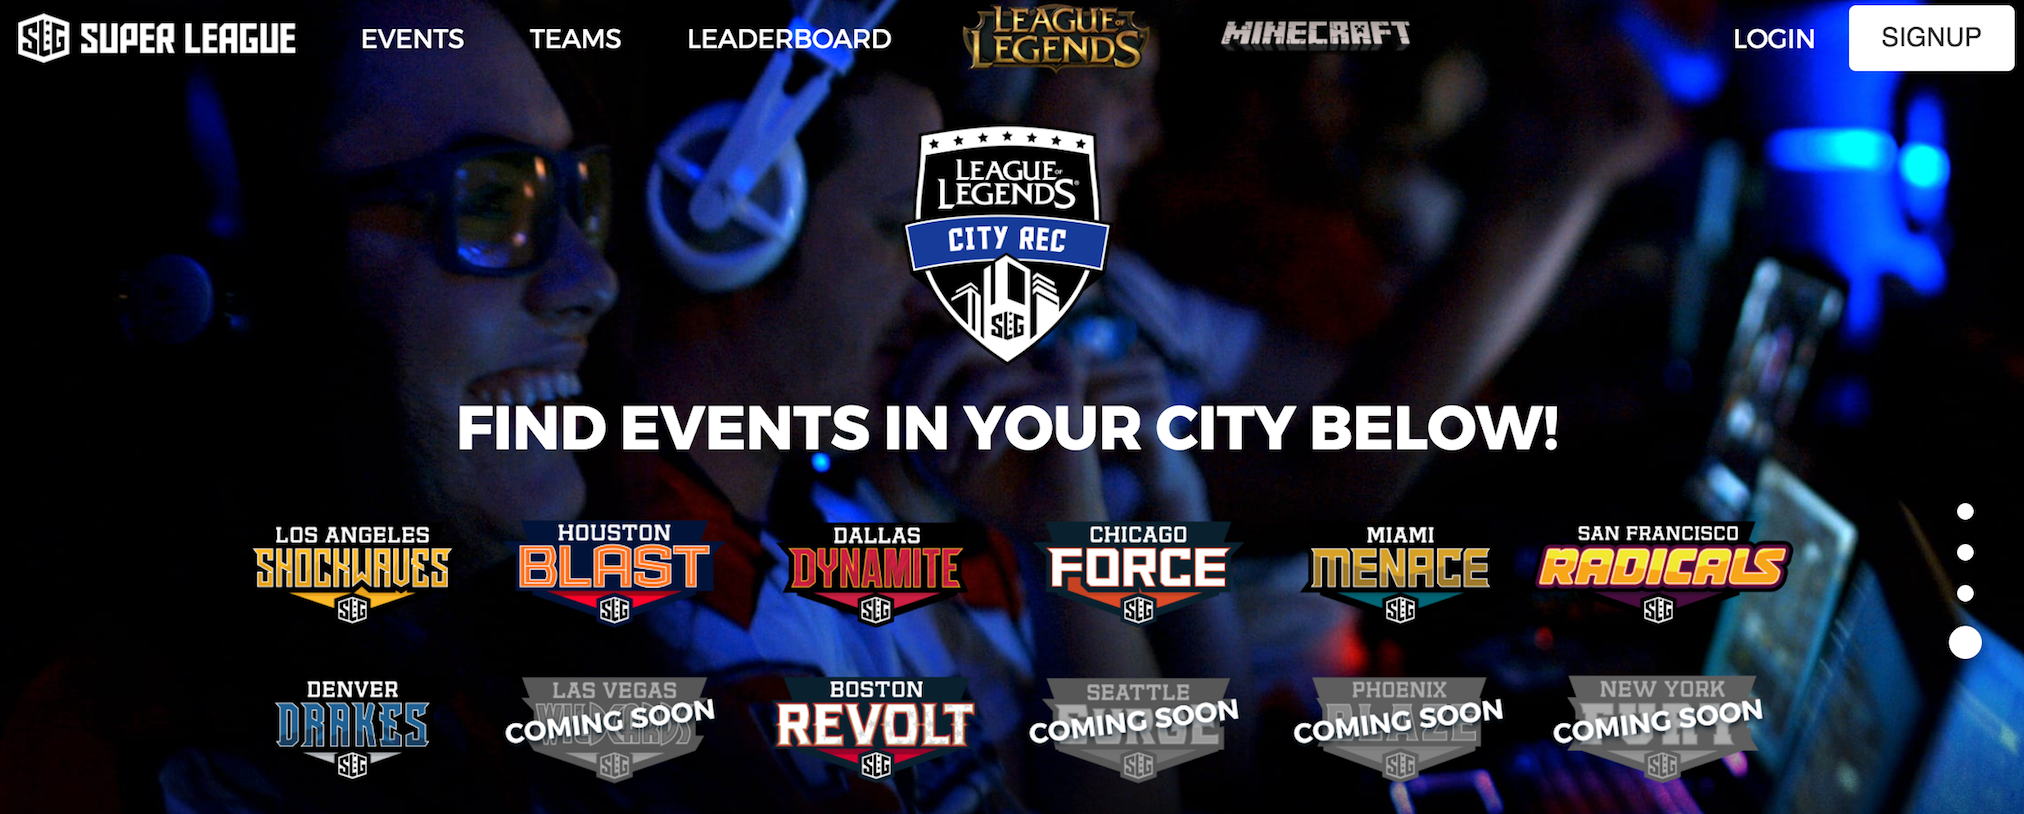 Super League Gamings City Based League (Photo: Super League Gaming)